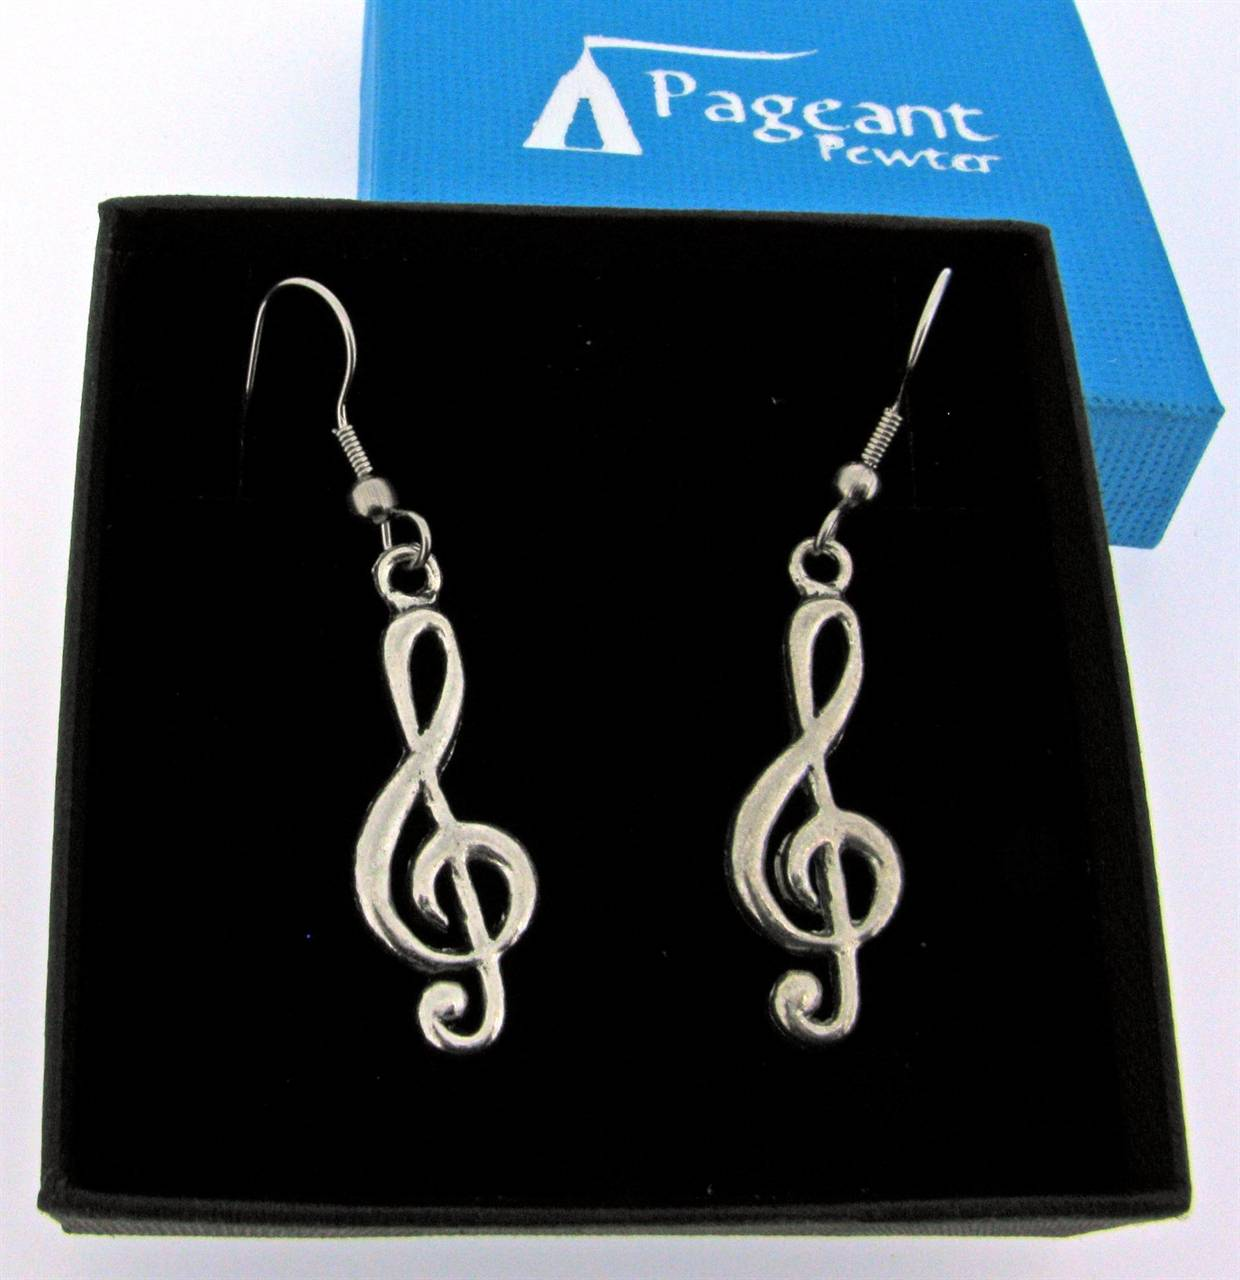 Treble Clef Earrings - high quality pewter gifts from Pageant Pewter